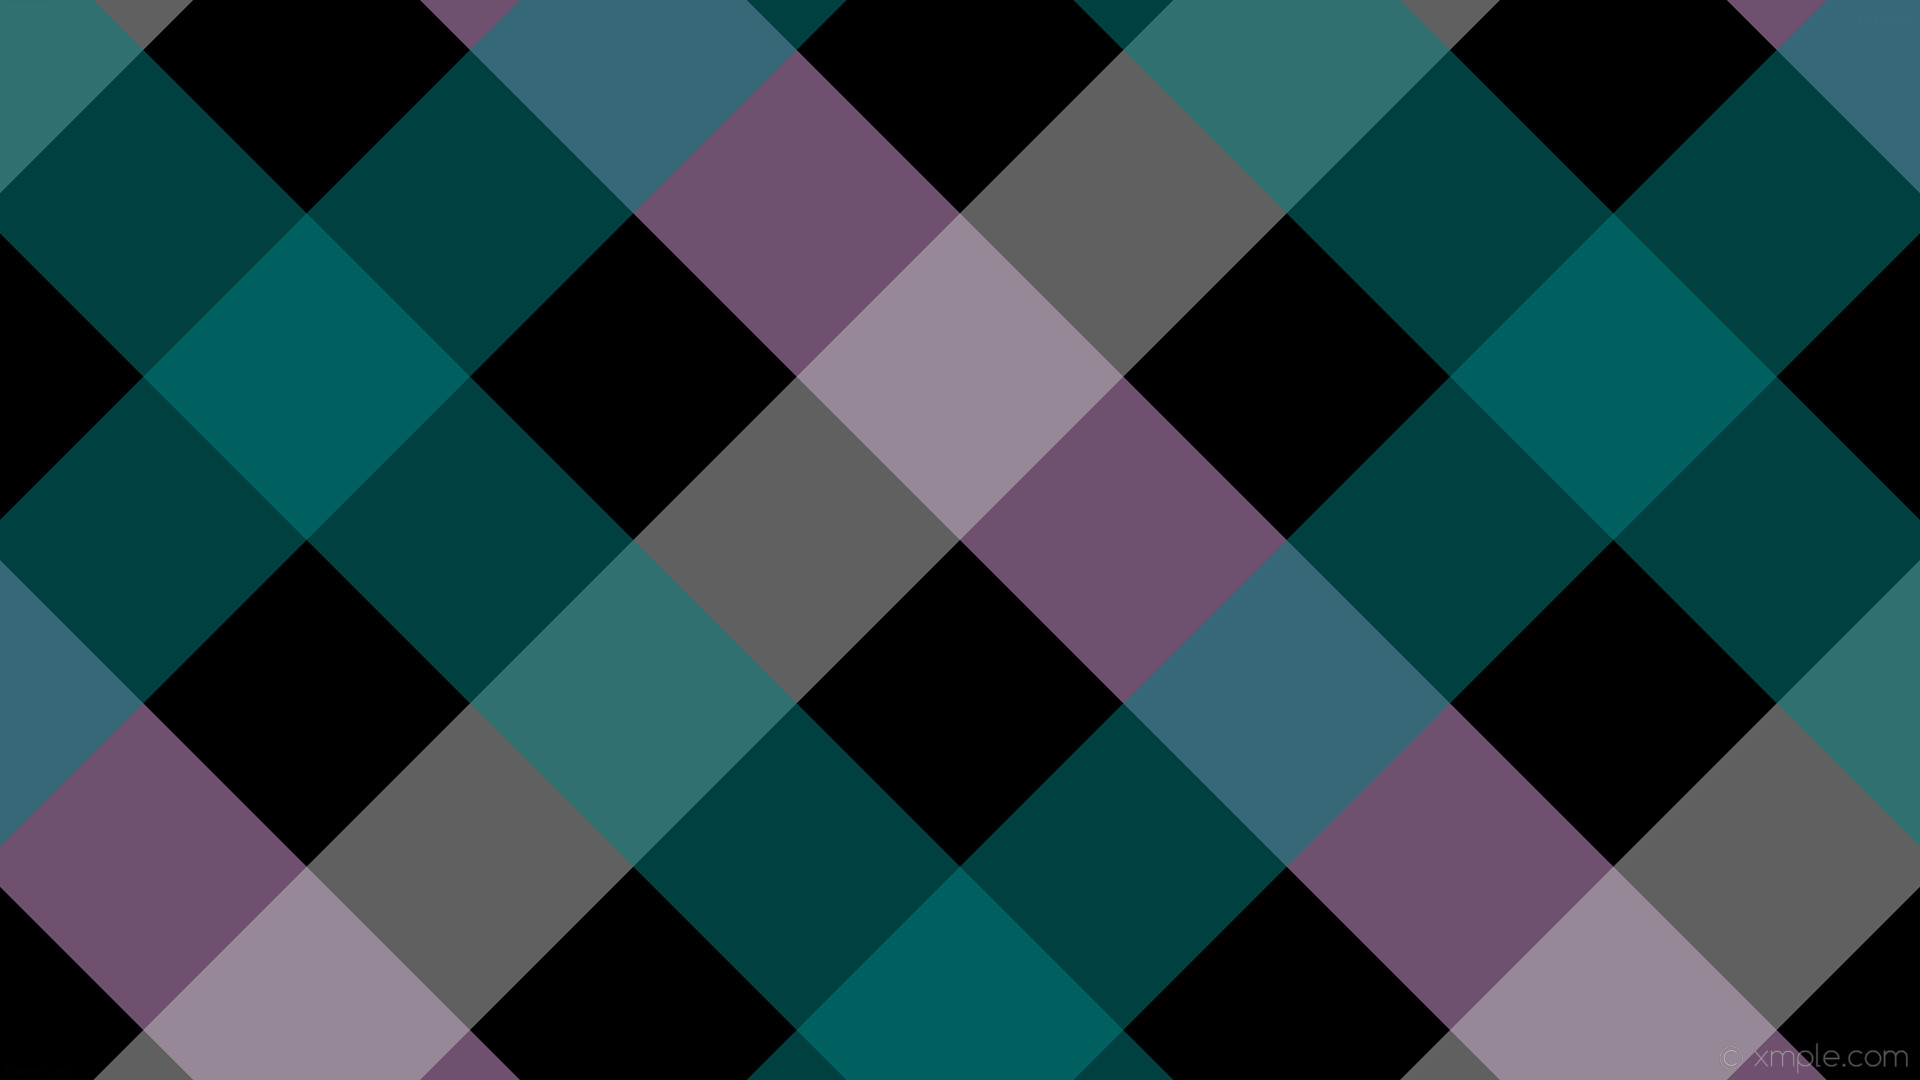 1920x1080 wallpaper quad purple green grey striped gingham black plum silver teal  #000000 #dda0dd #